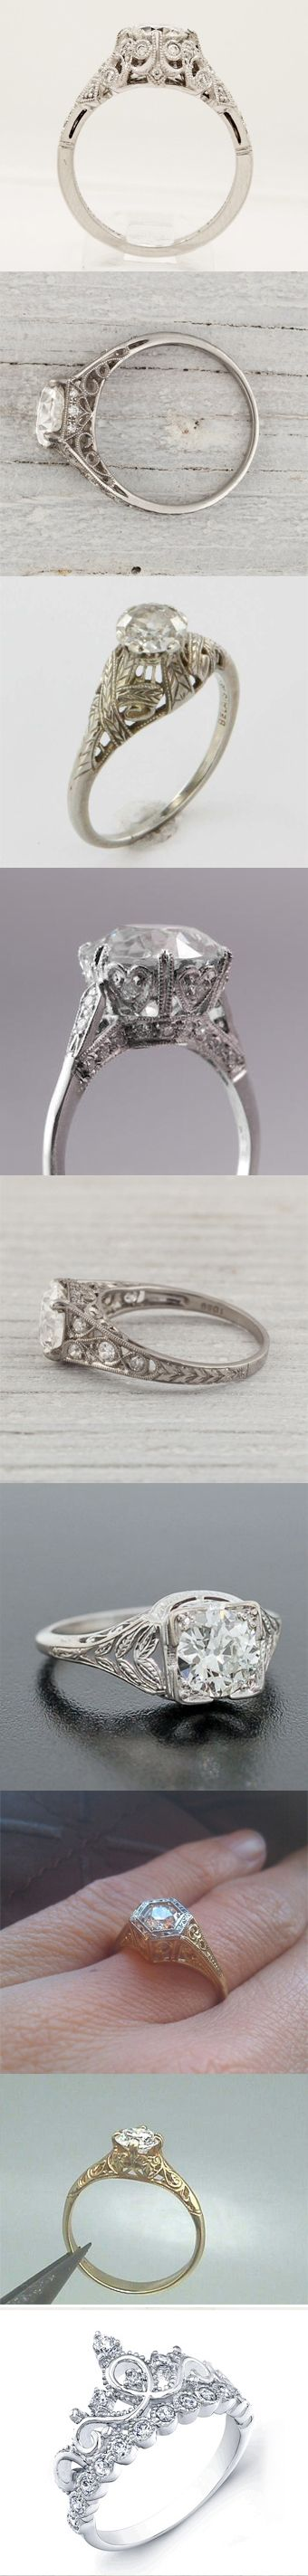 best jewelry images on pinterest earrings engagement rings and